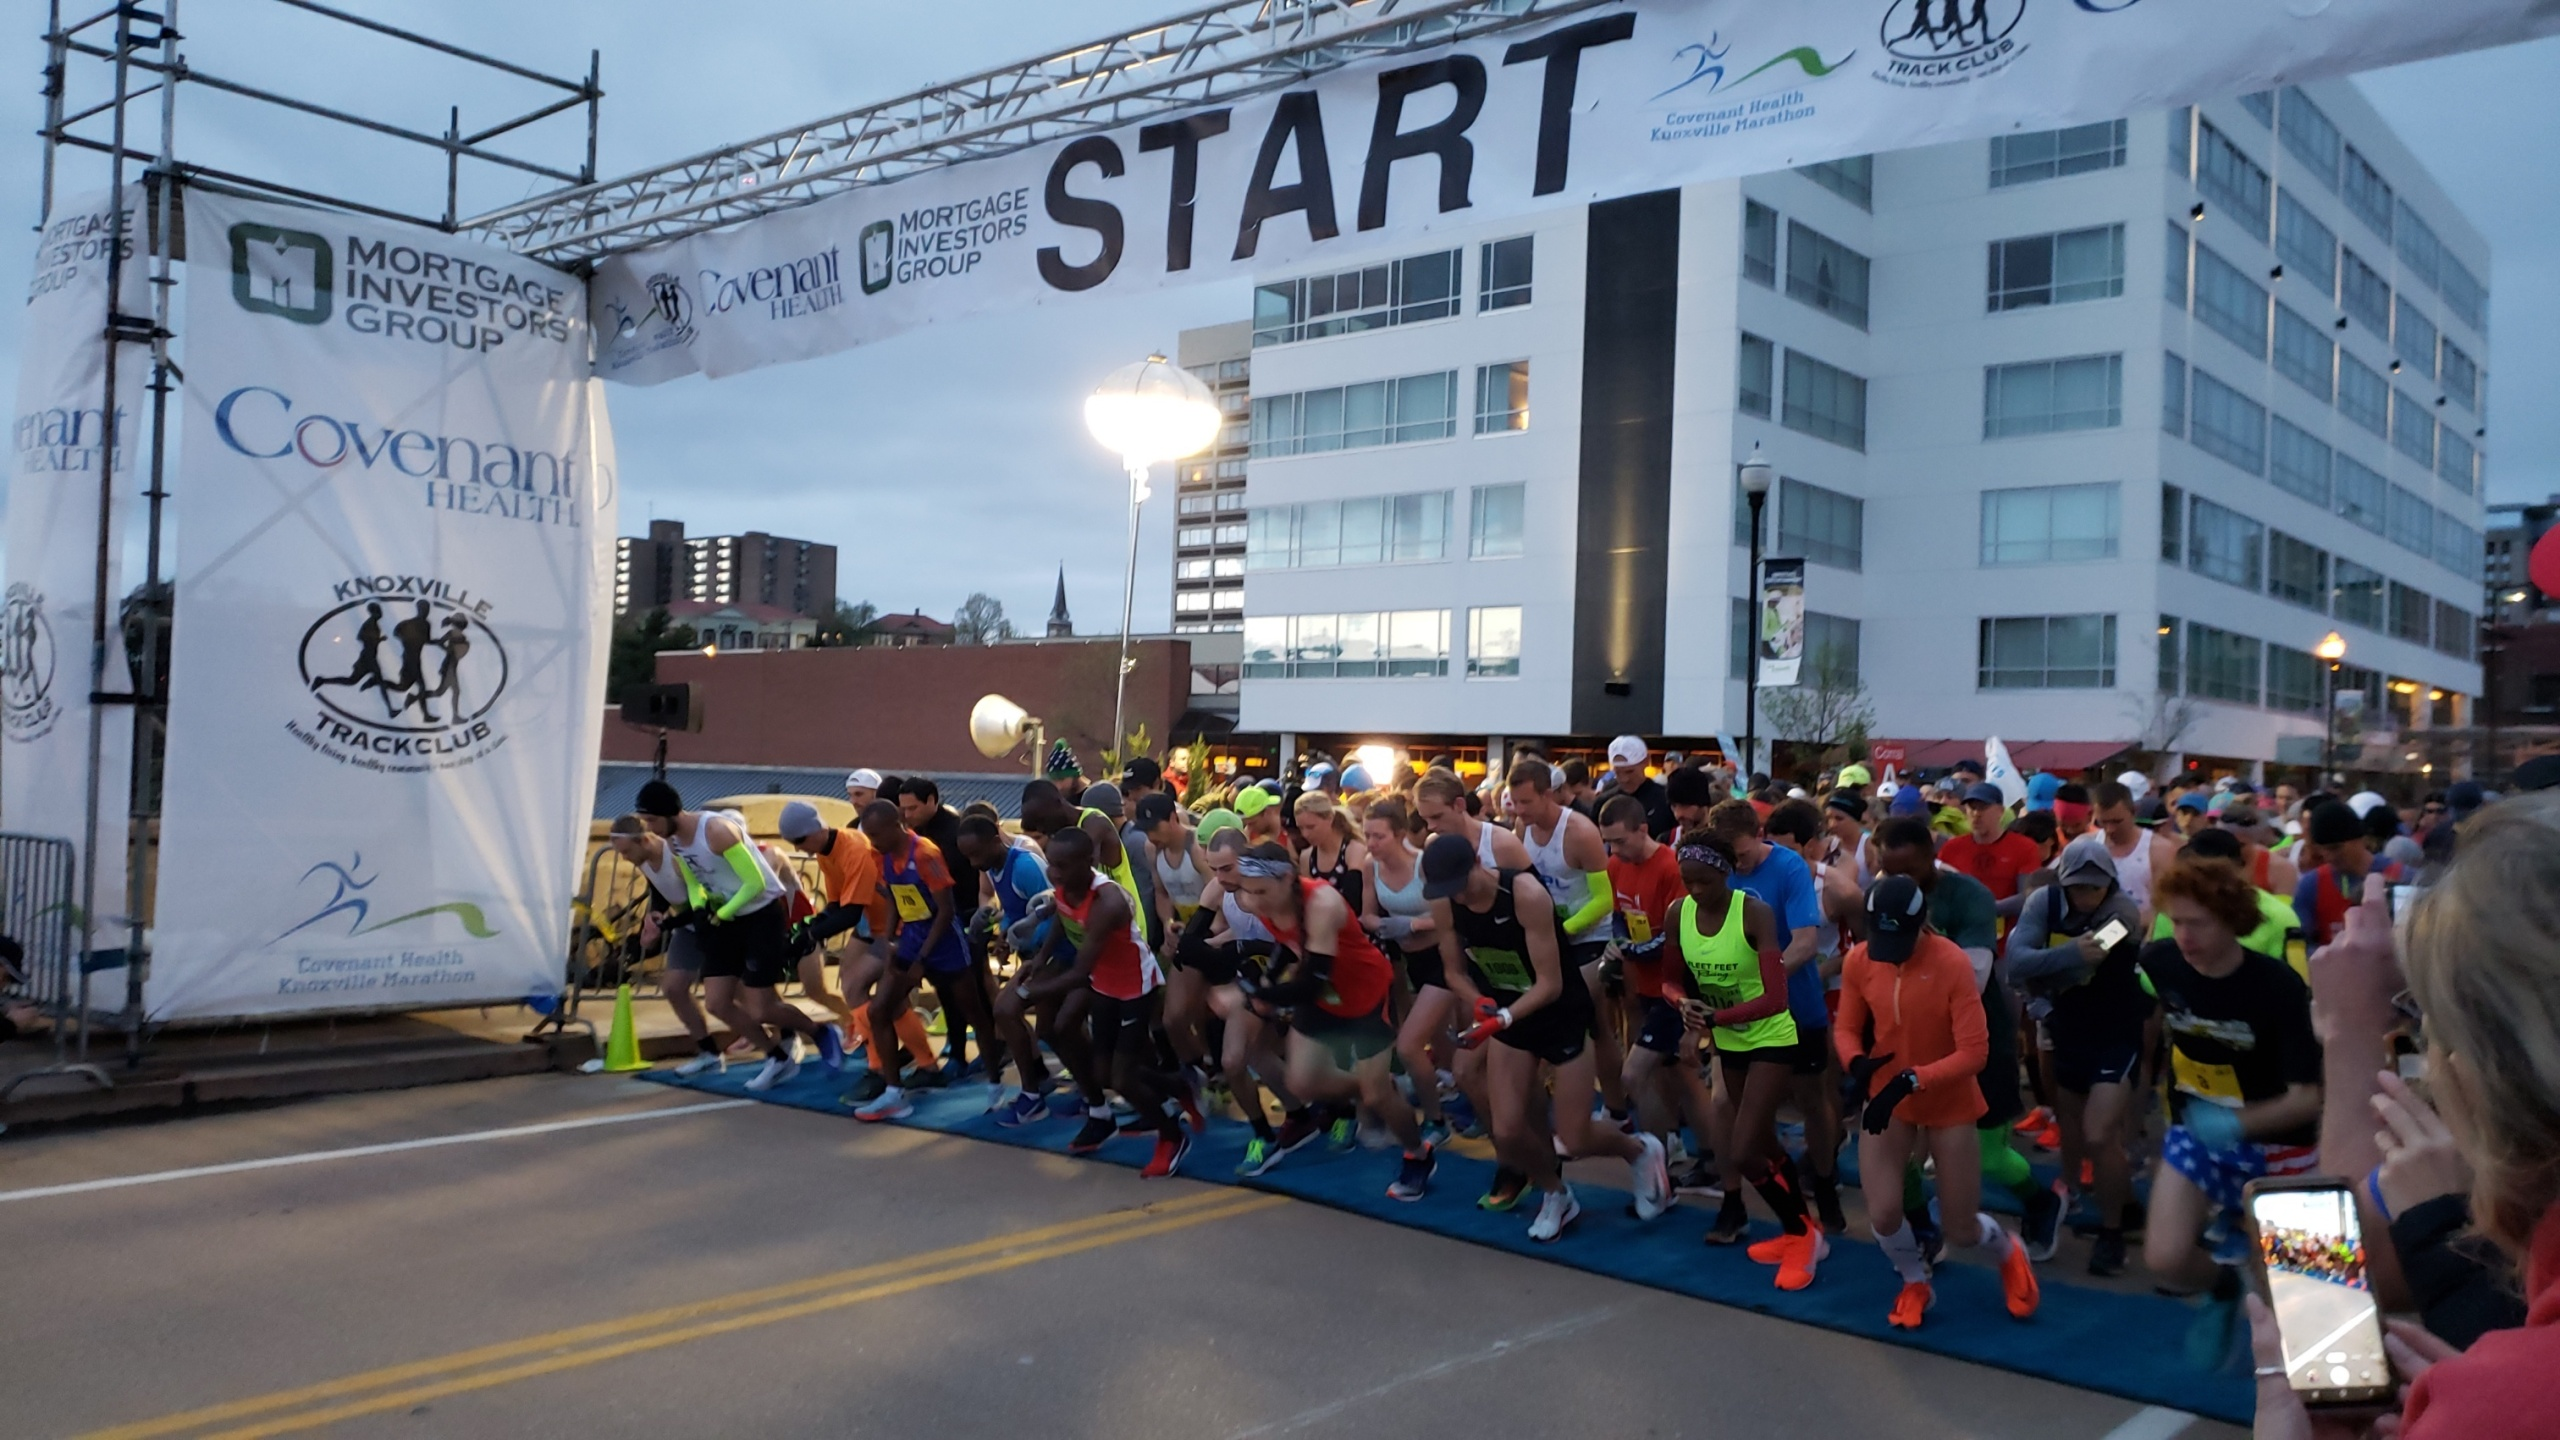 2019-03-31 Covenant Health Knoxville Marathon - start line_1554065587211.jpg.jpg